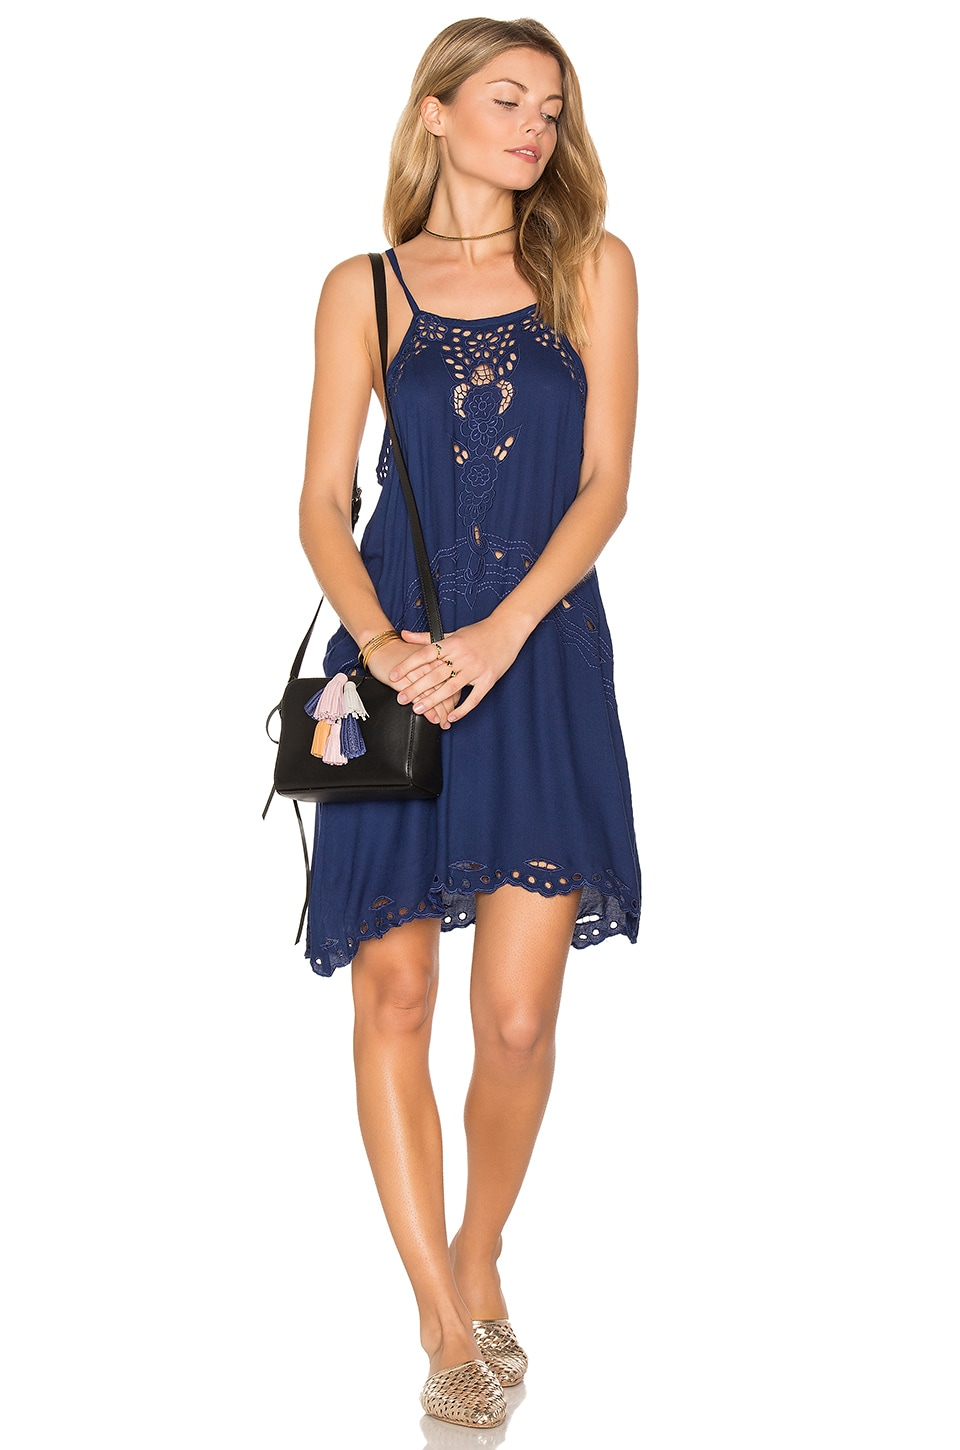 Tiare Hawaii Jelys Dress in Navy